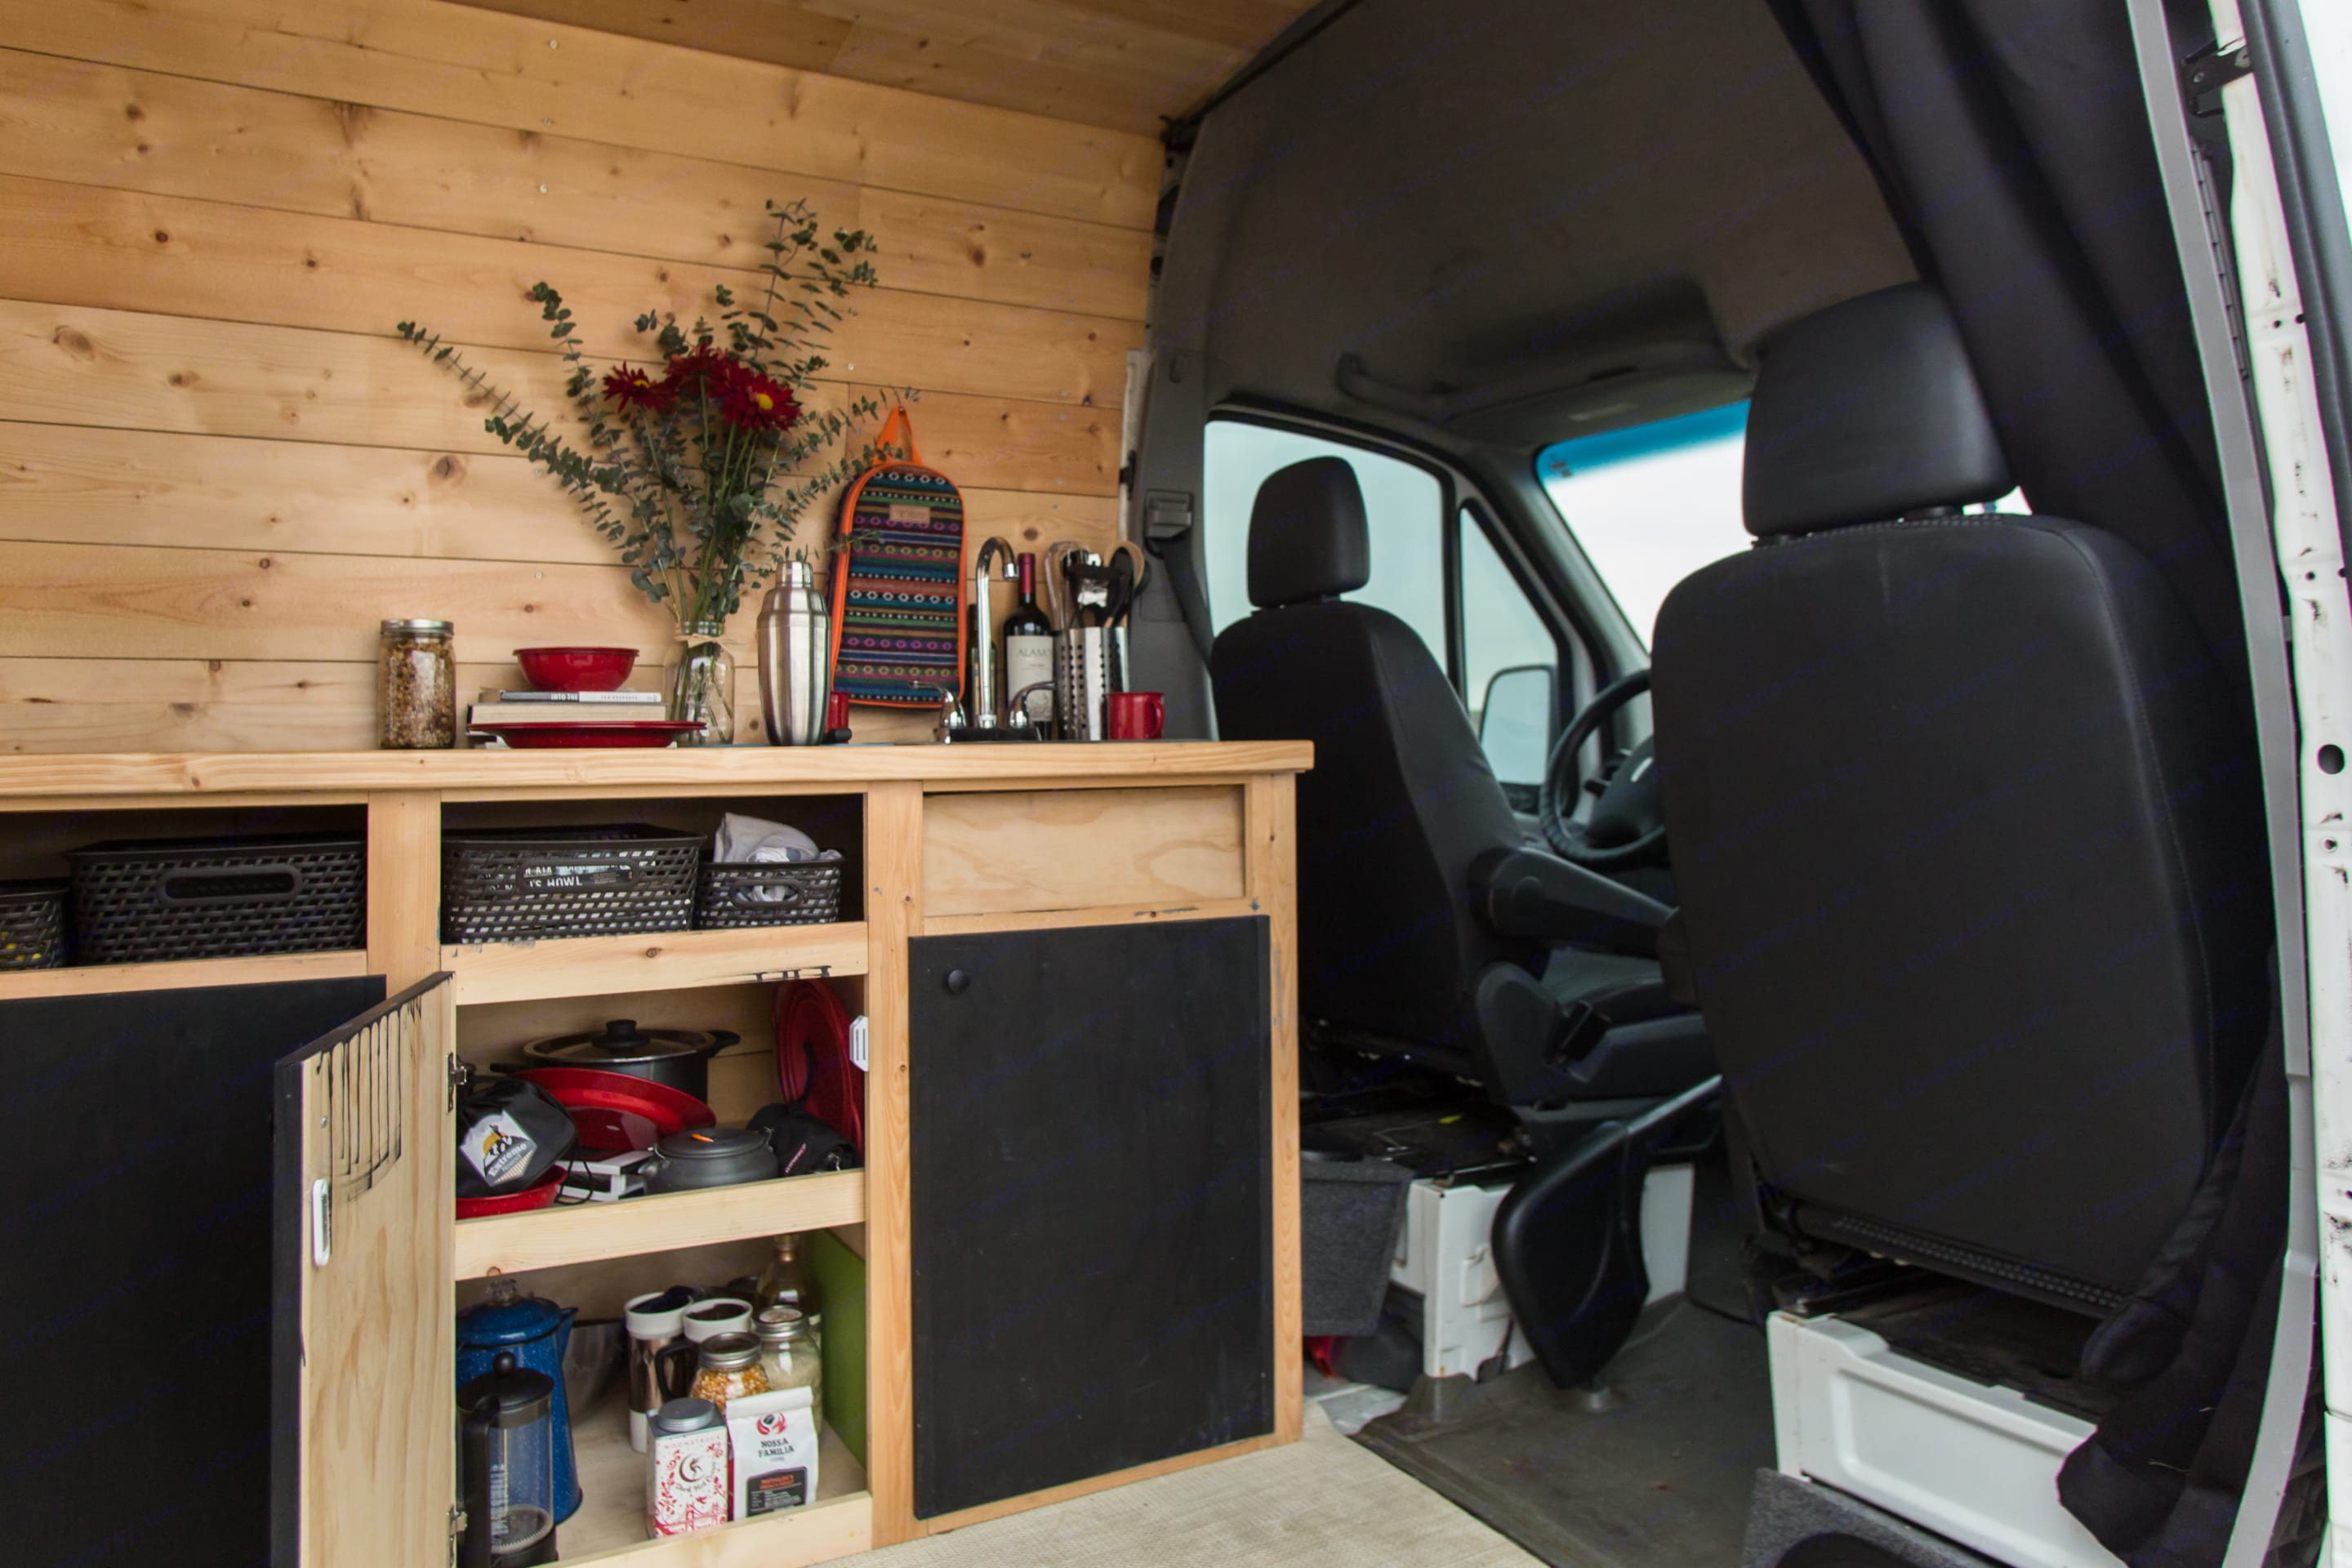 Cooking essentials to fix your meals are included with your rental.. Freightliner Sprinter 2007